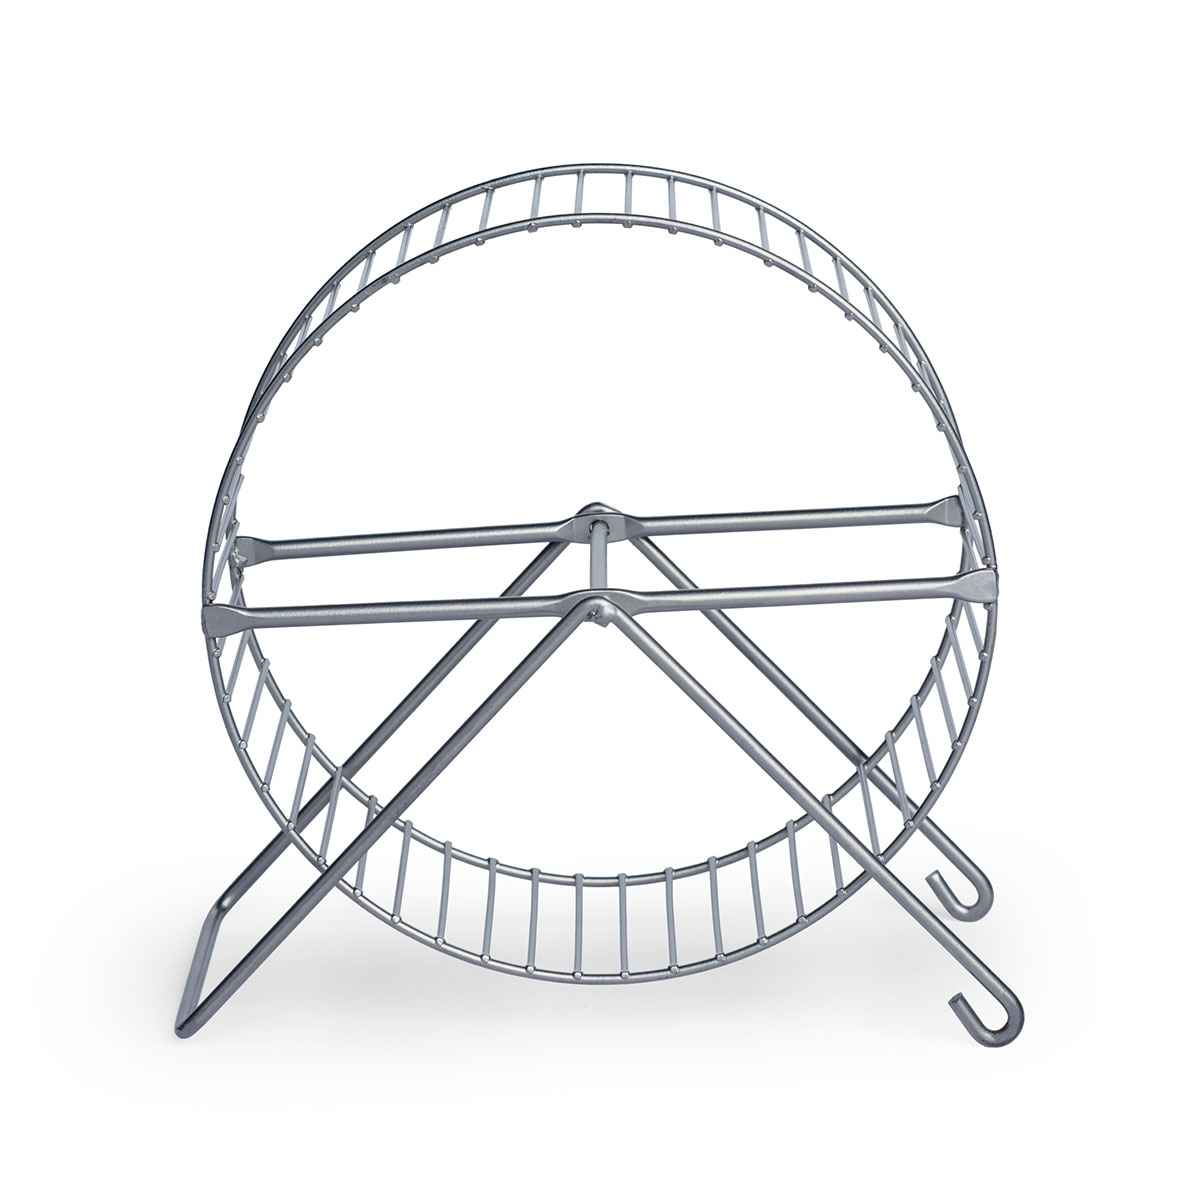 Prevue Pet Products Inc-Small Animal Exercise Wheel- Silver 7 Inch